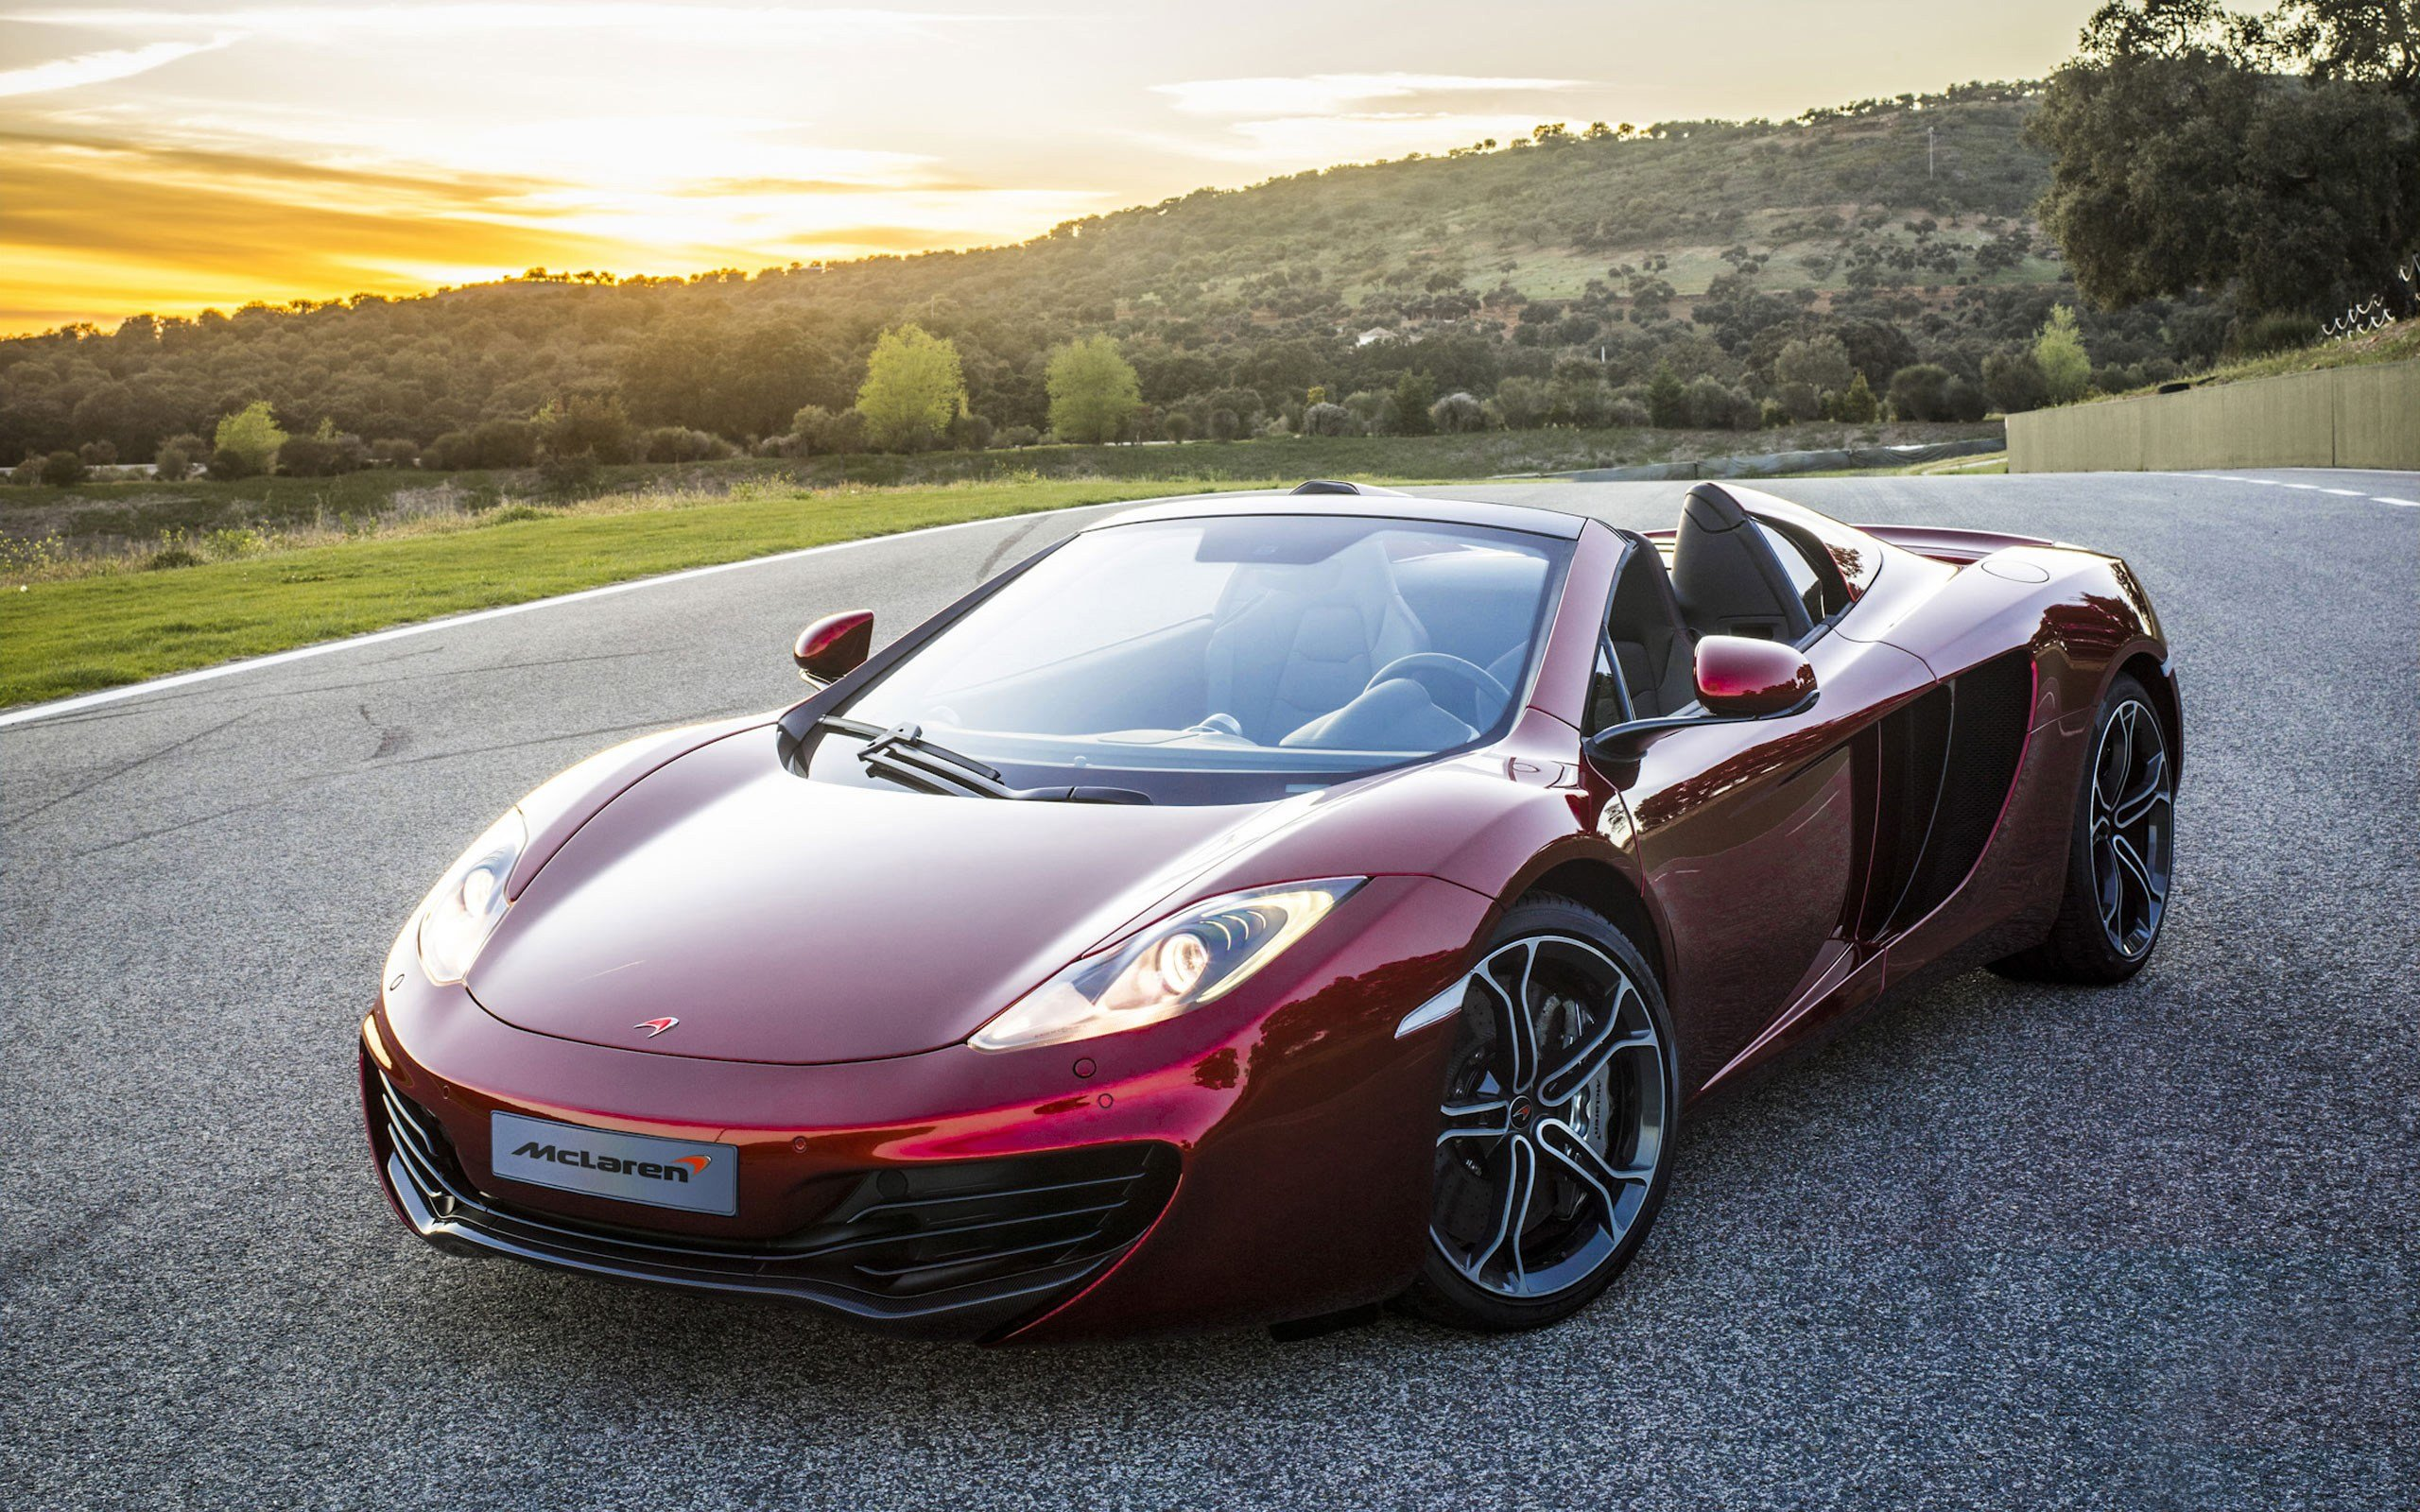 New 2012 Mclaren Mp4 12C Spider Wallpaper Hd Car Wallpapers On This Month